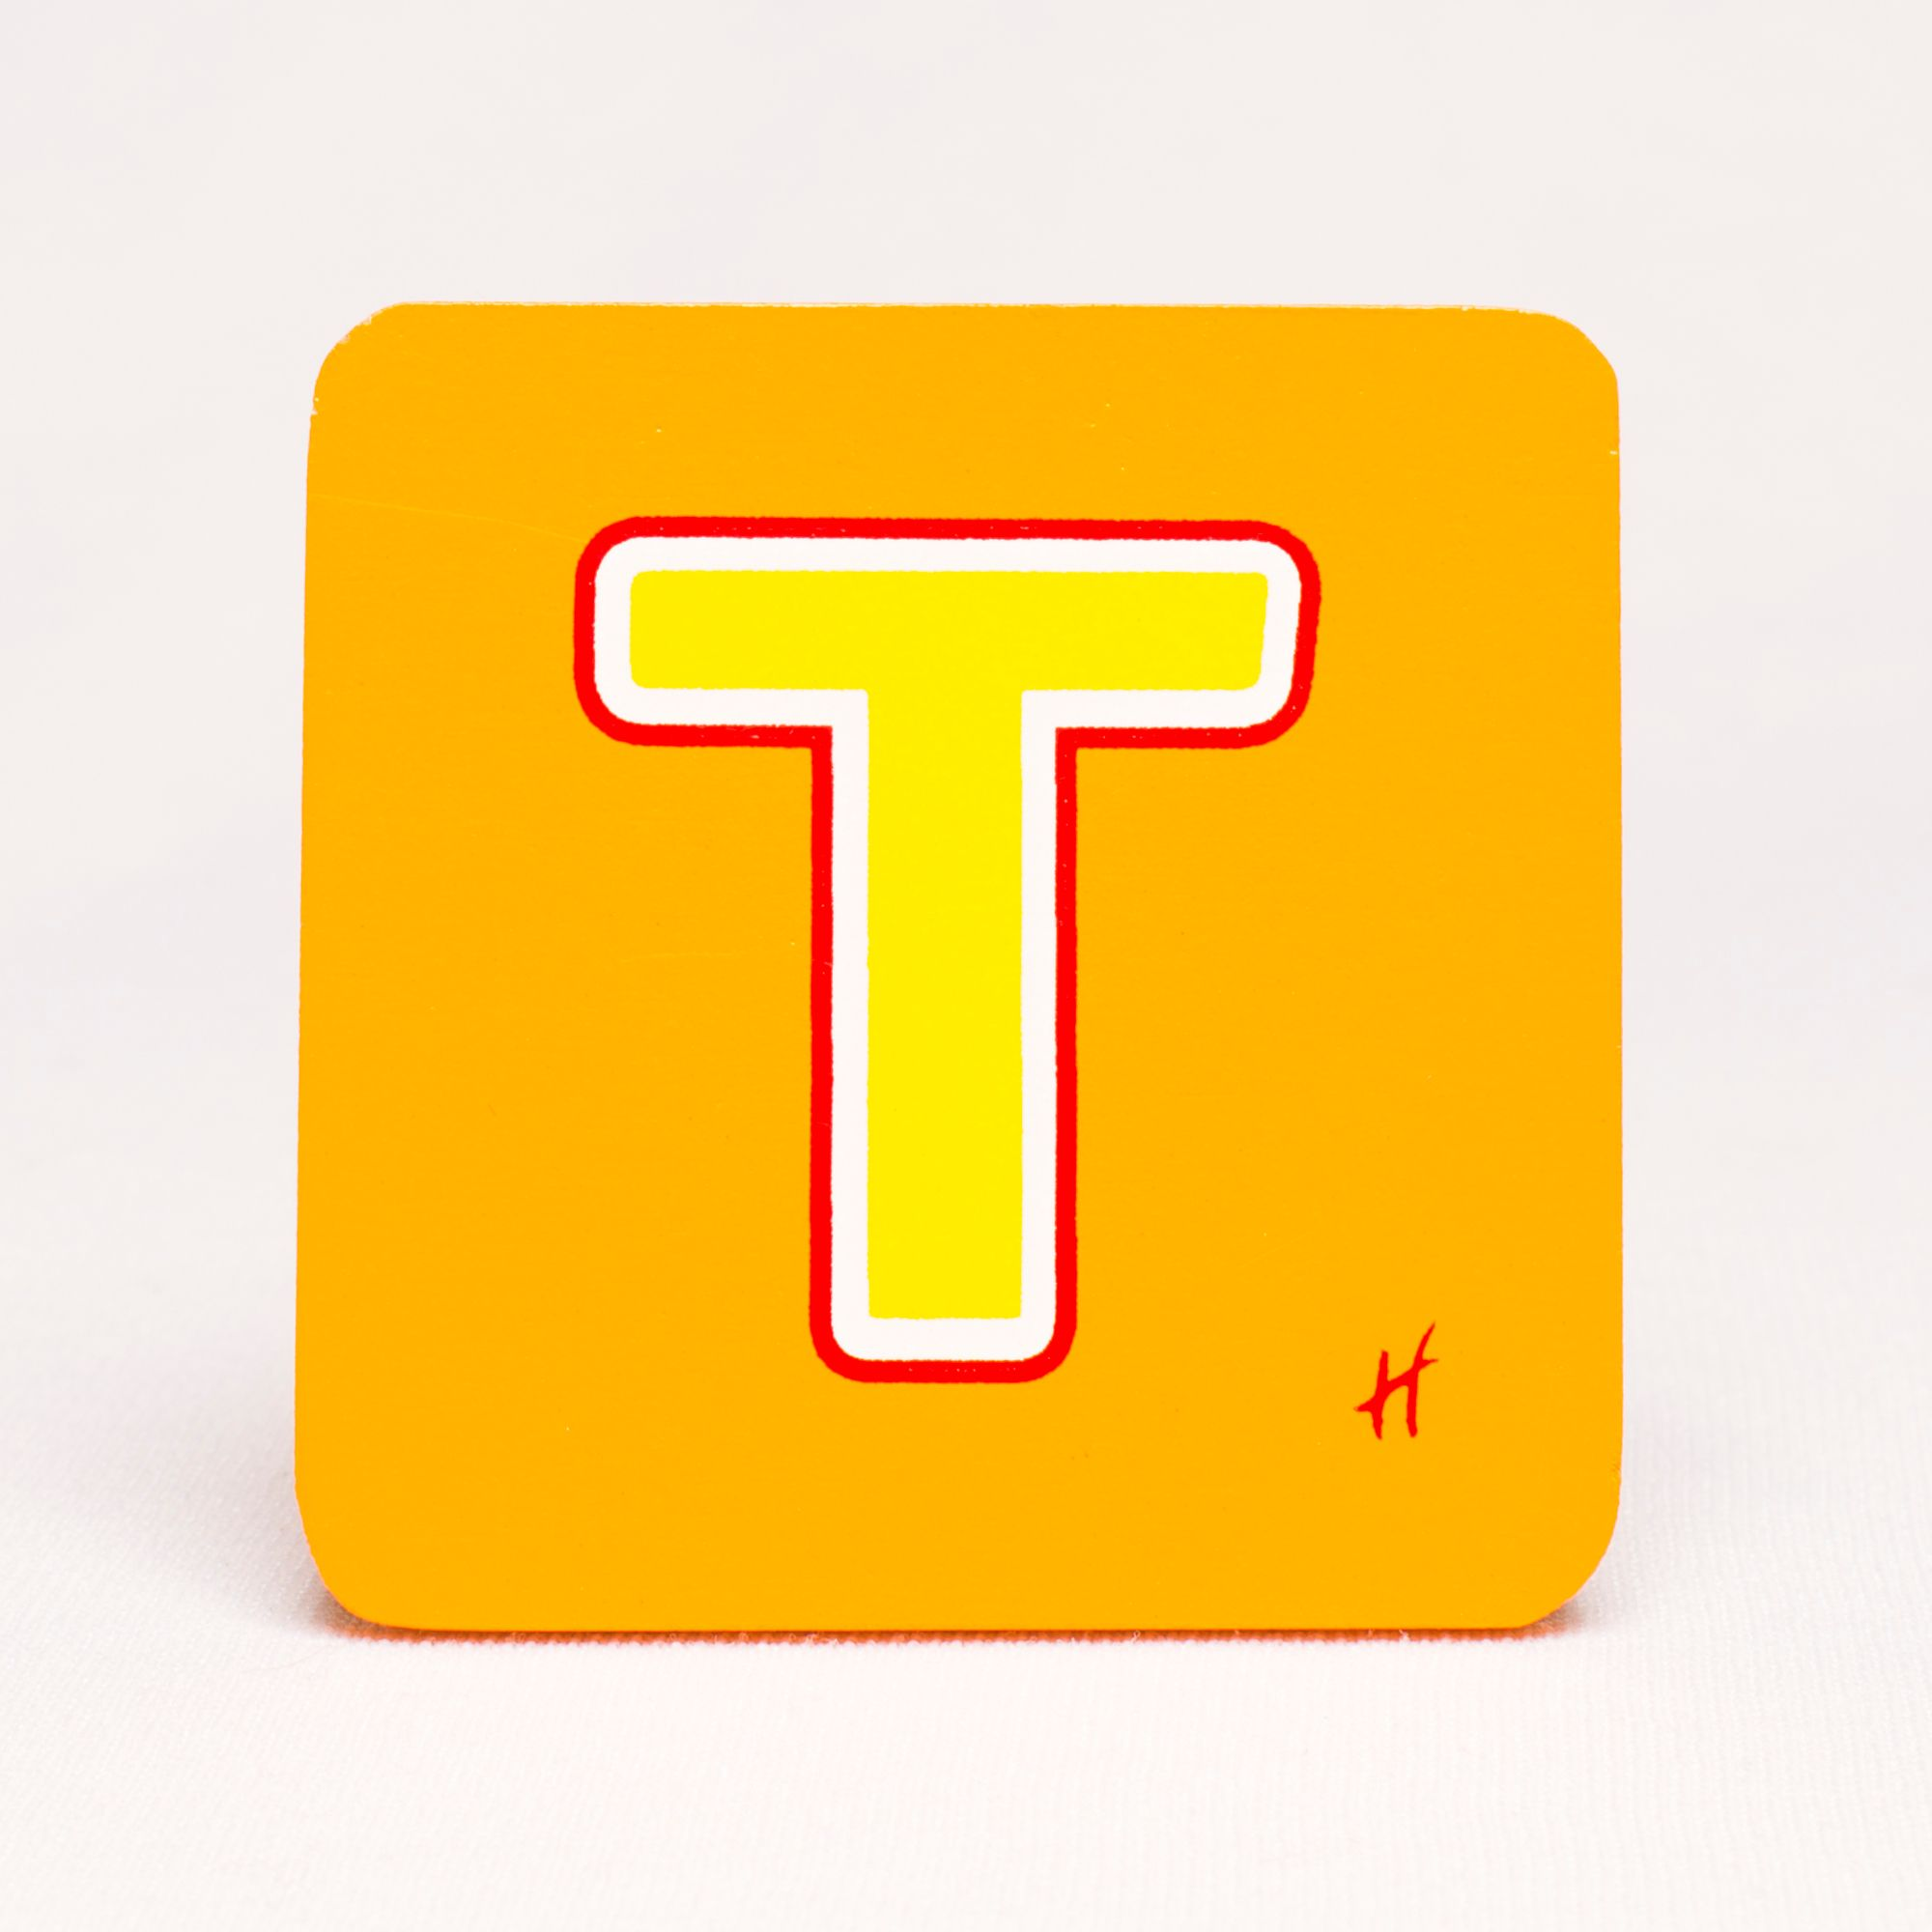 Hamleys Wooden Letter T